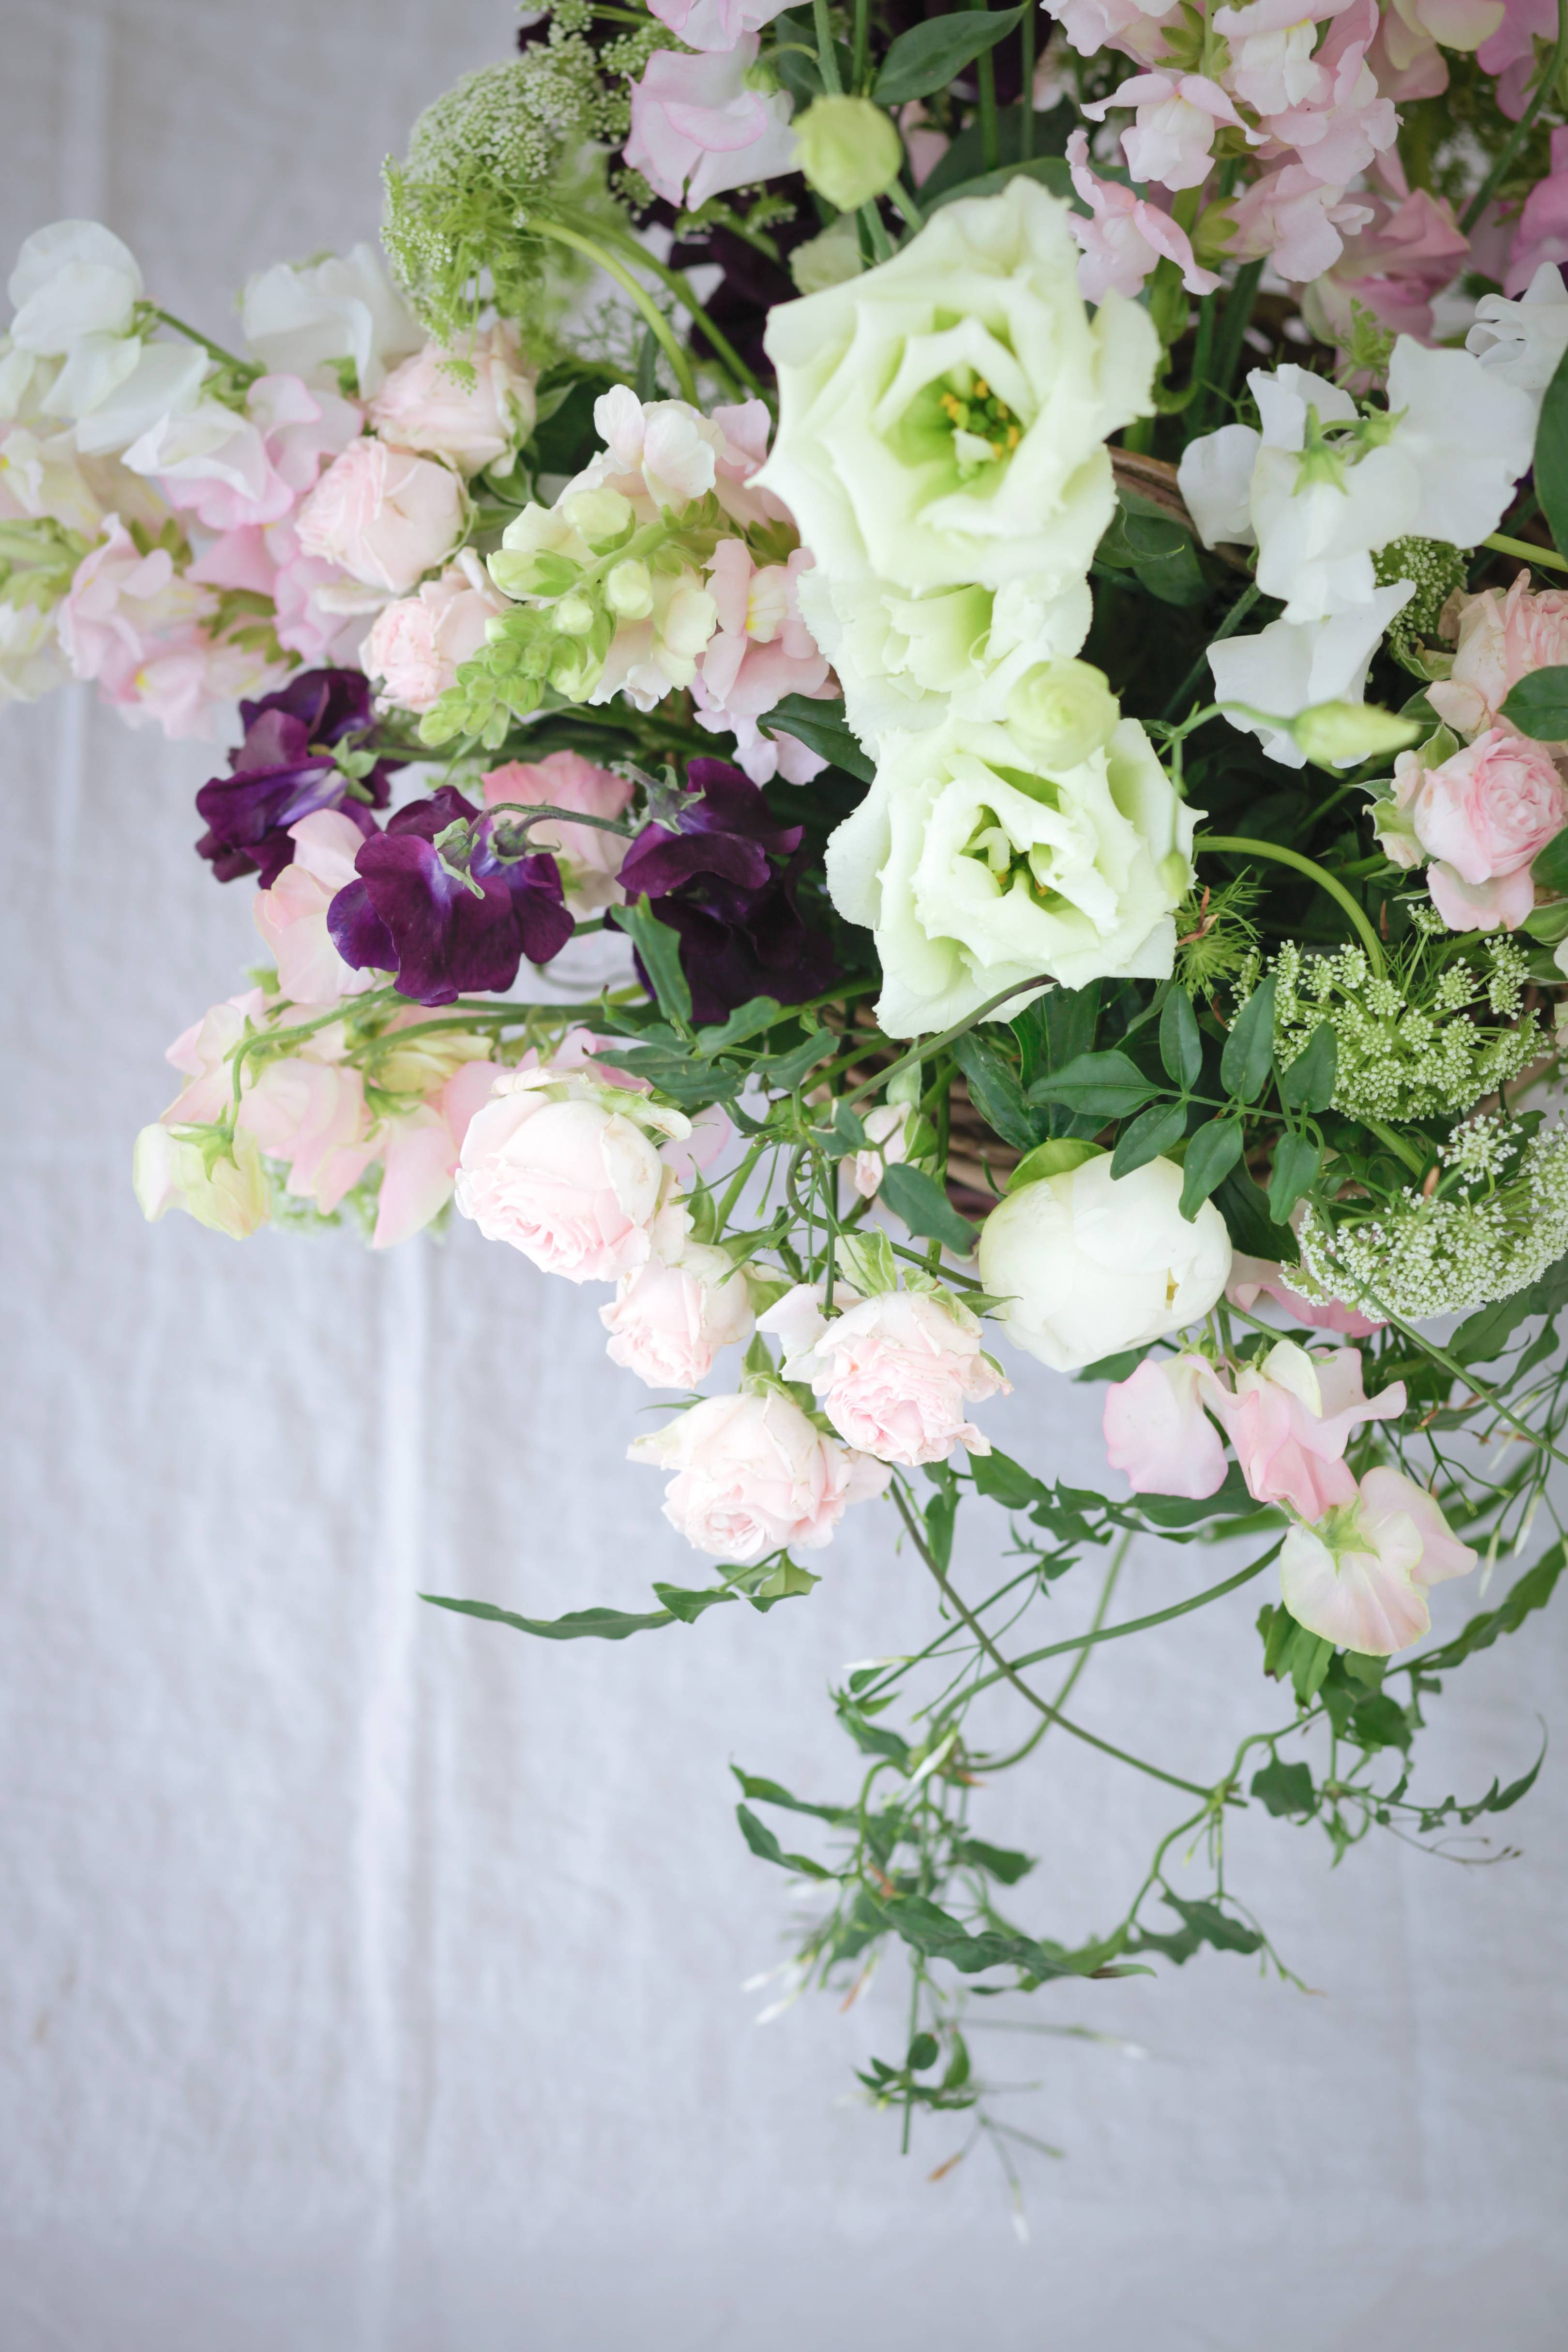 Flower workshops: floristry inspired by nature at Daylesford